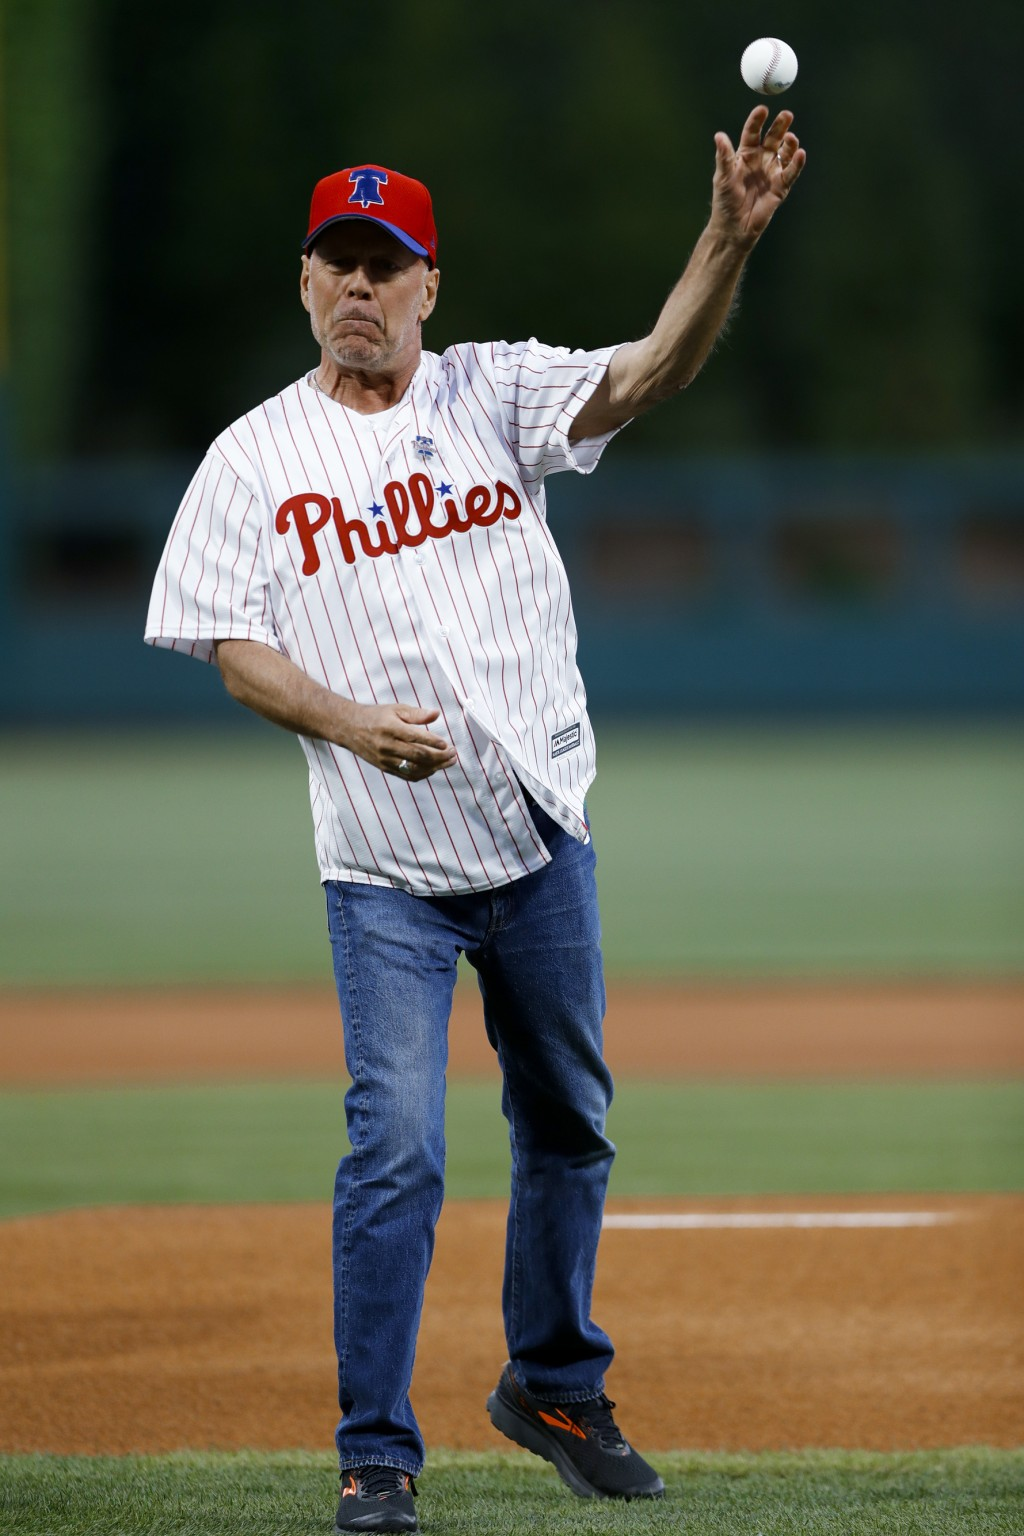 Actor Bruce Willis throws out a first pitch before a baseball game between the Philadelphia Phillies and the Milwaukee Brewers, Wednesday, May 15, 201...